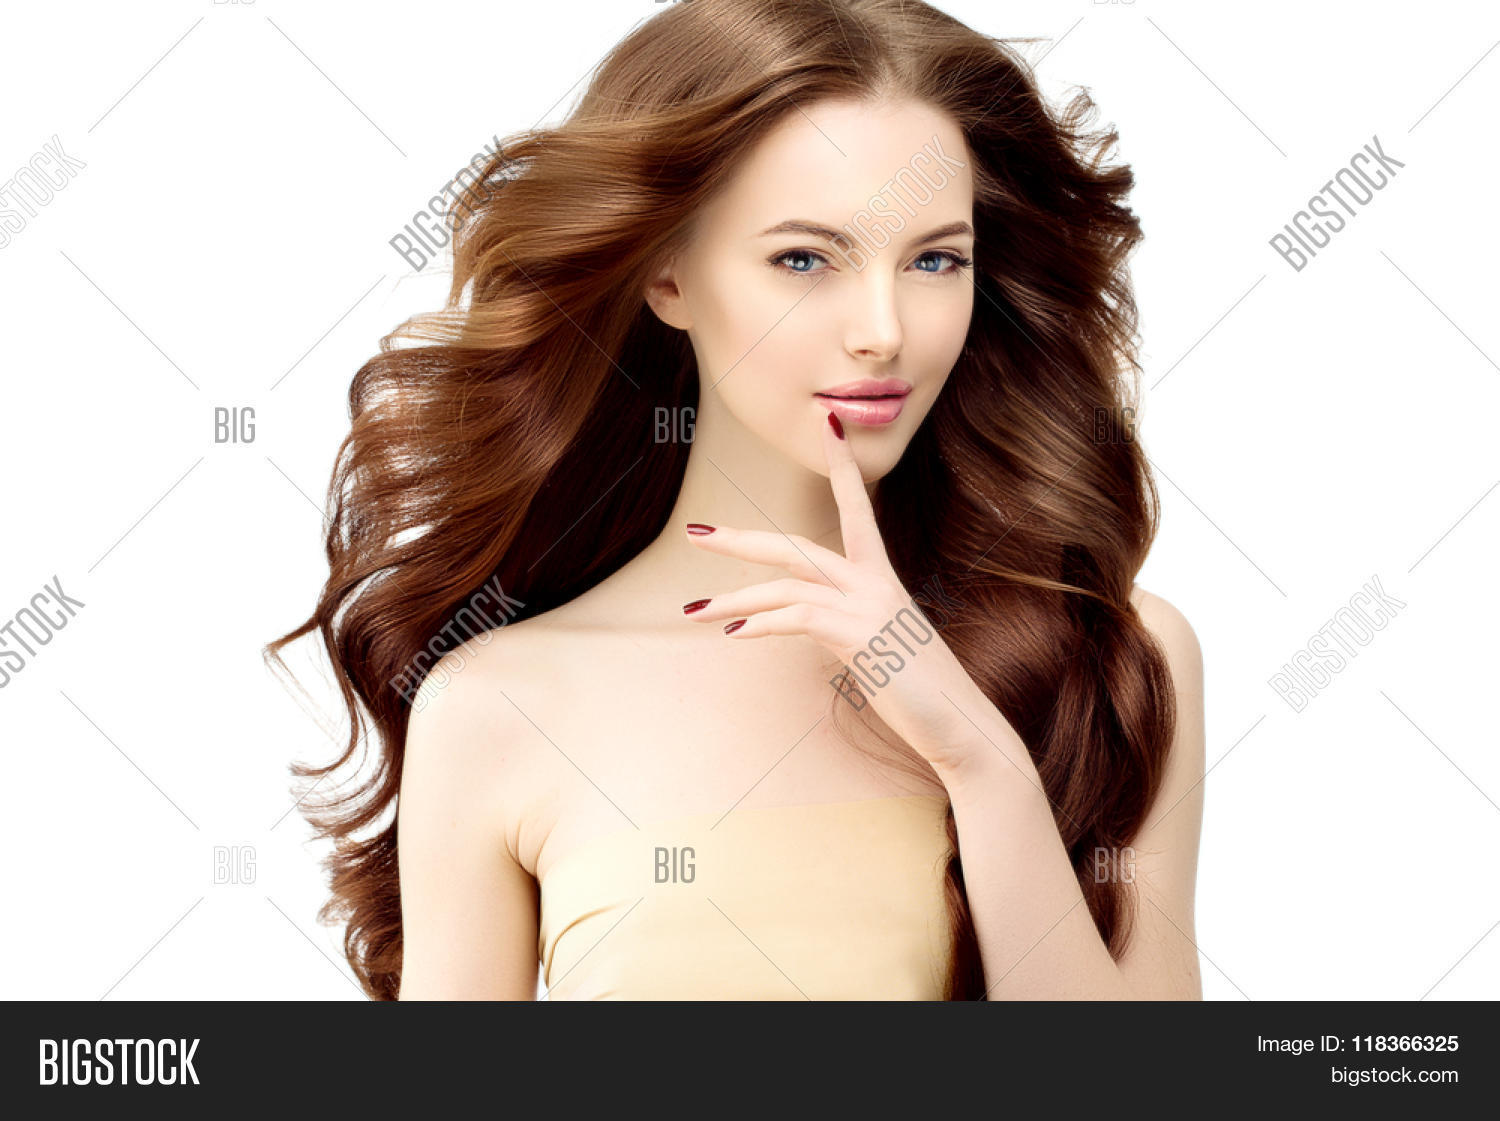 Hairstyles Female Hair Loss Model With Long Wavy Hair Waves Curls Hairstyle Hair Salon Updo